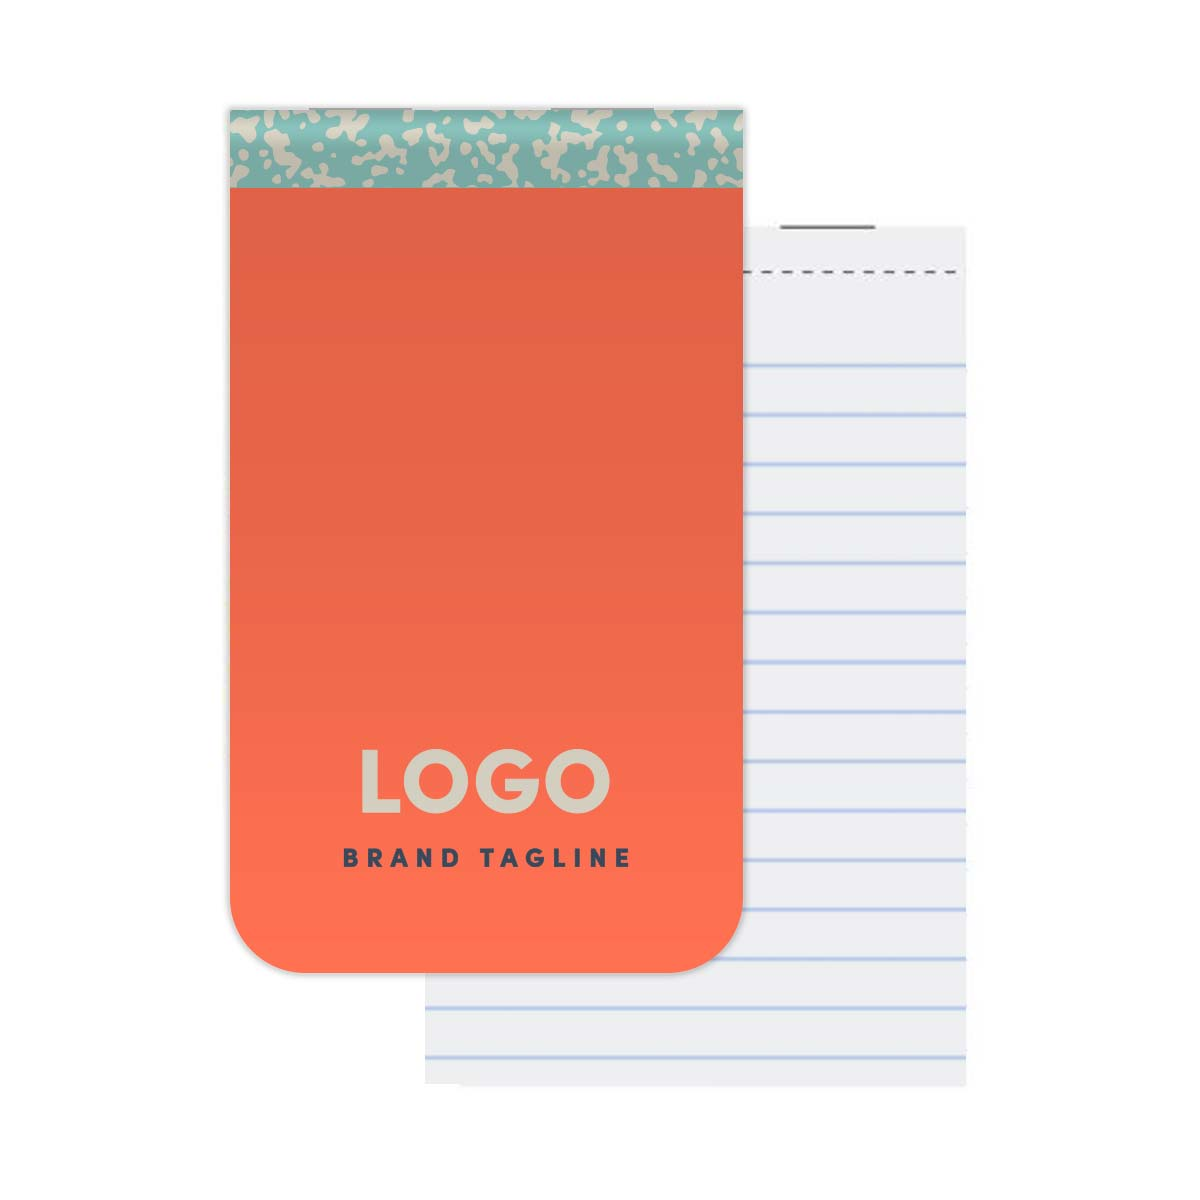 313923 full color memo pad full color cover rounded corners